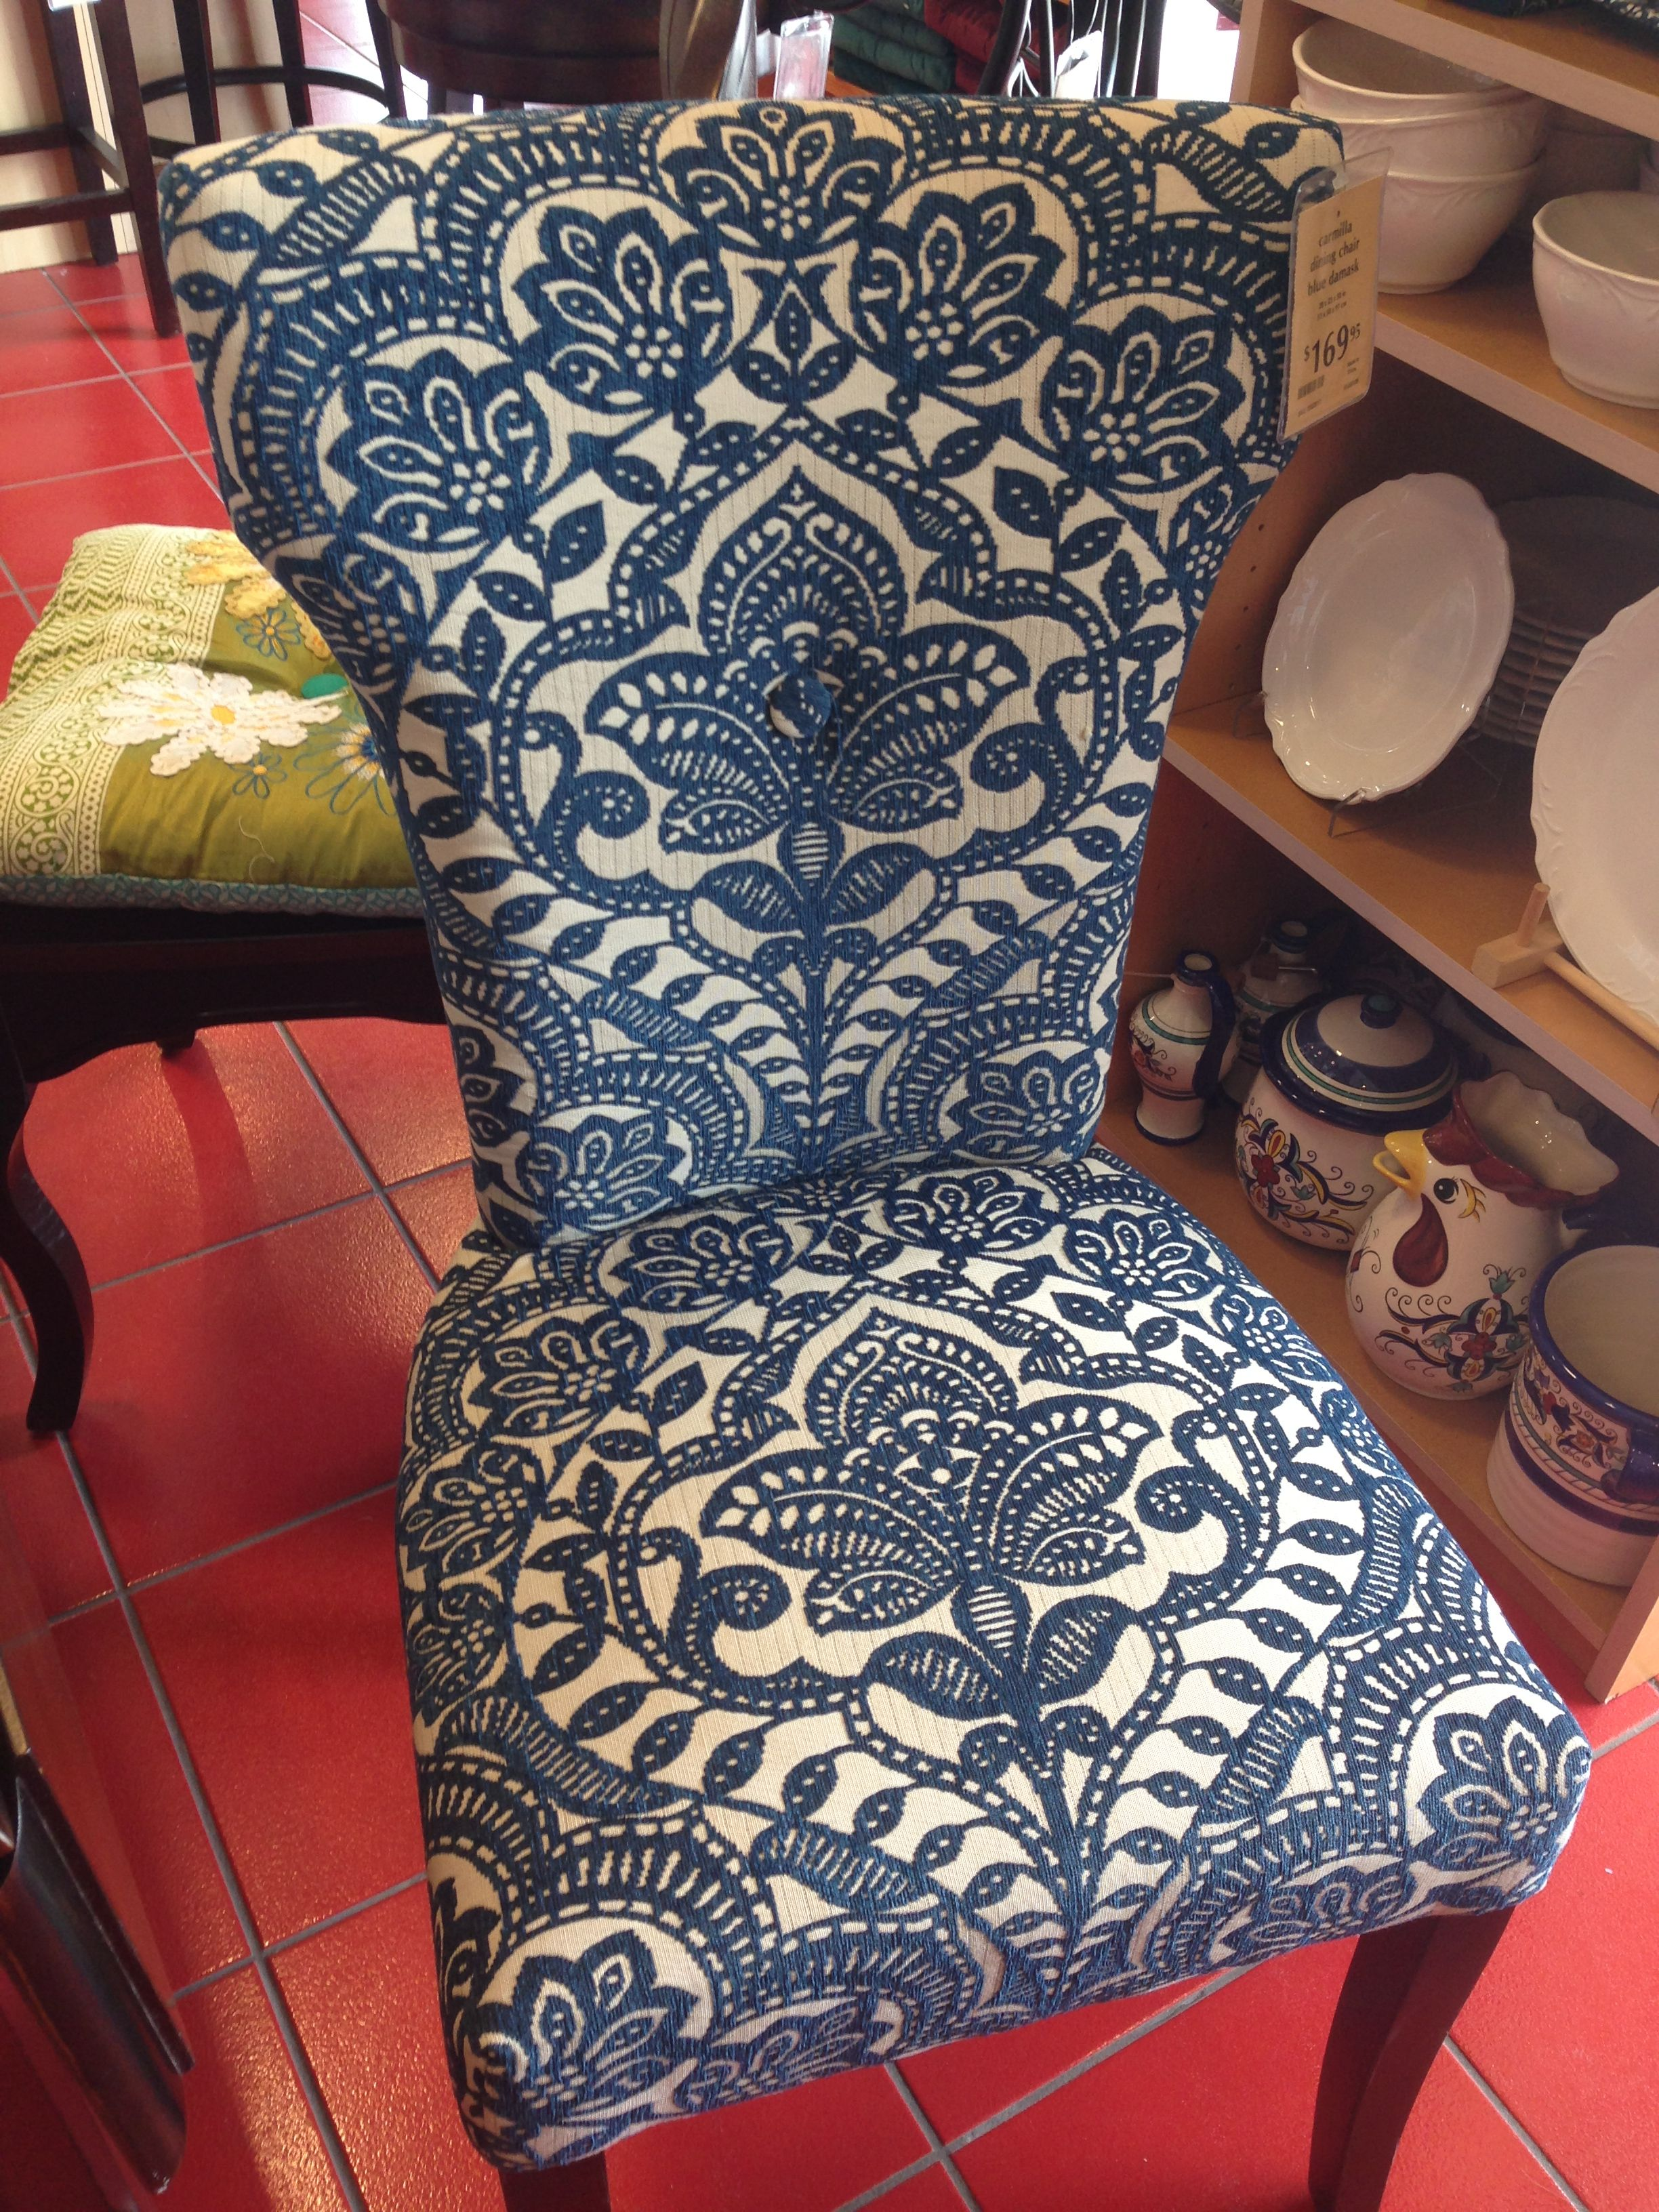 pier 1 living room rugs%0A Pier   dining room chair can reupholster a dining room chair with a  similar oilcloth